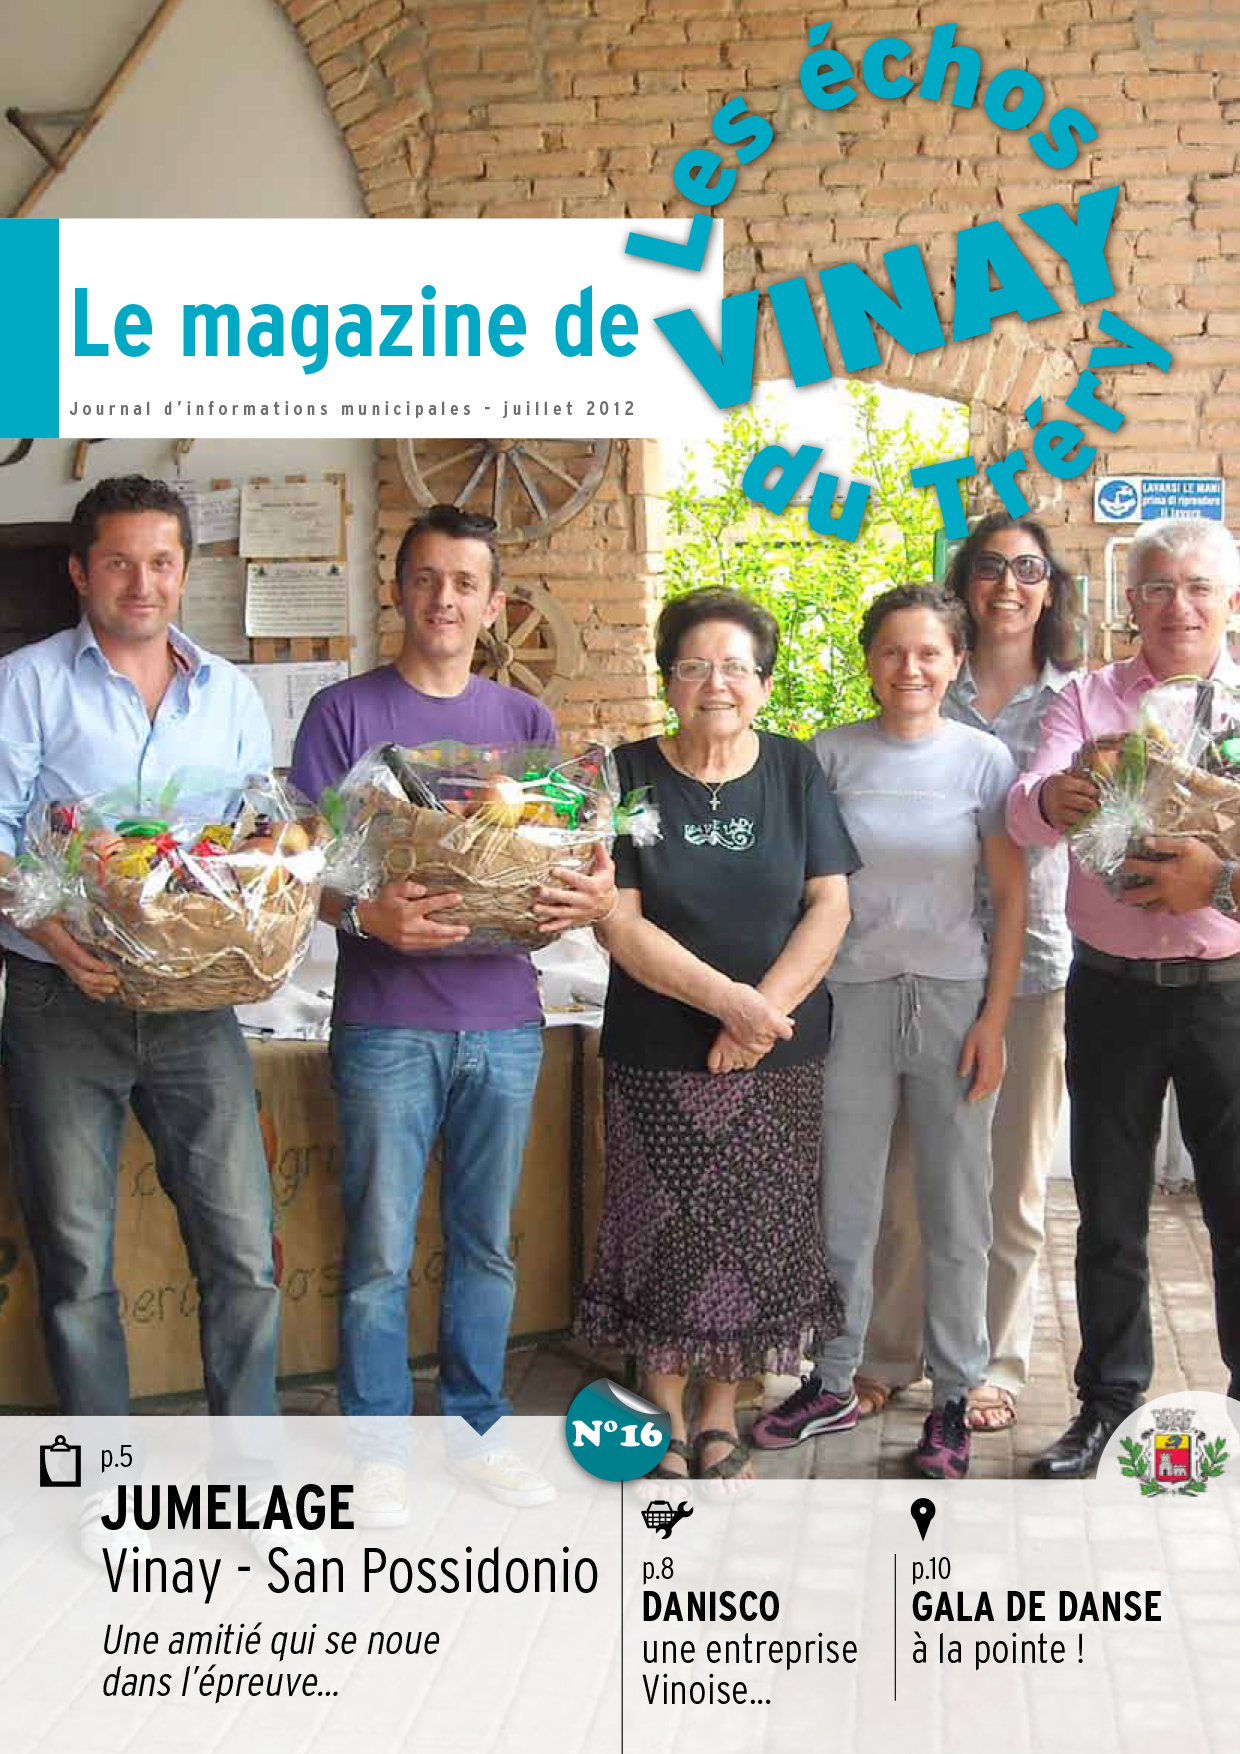 Journal de Vinay